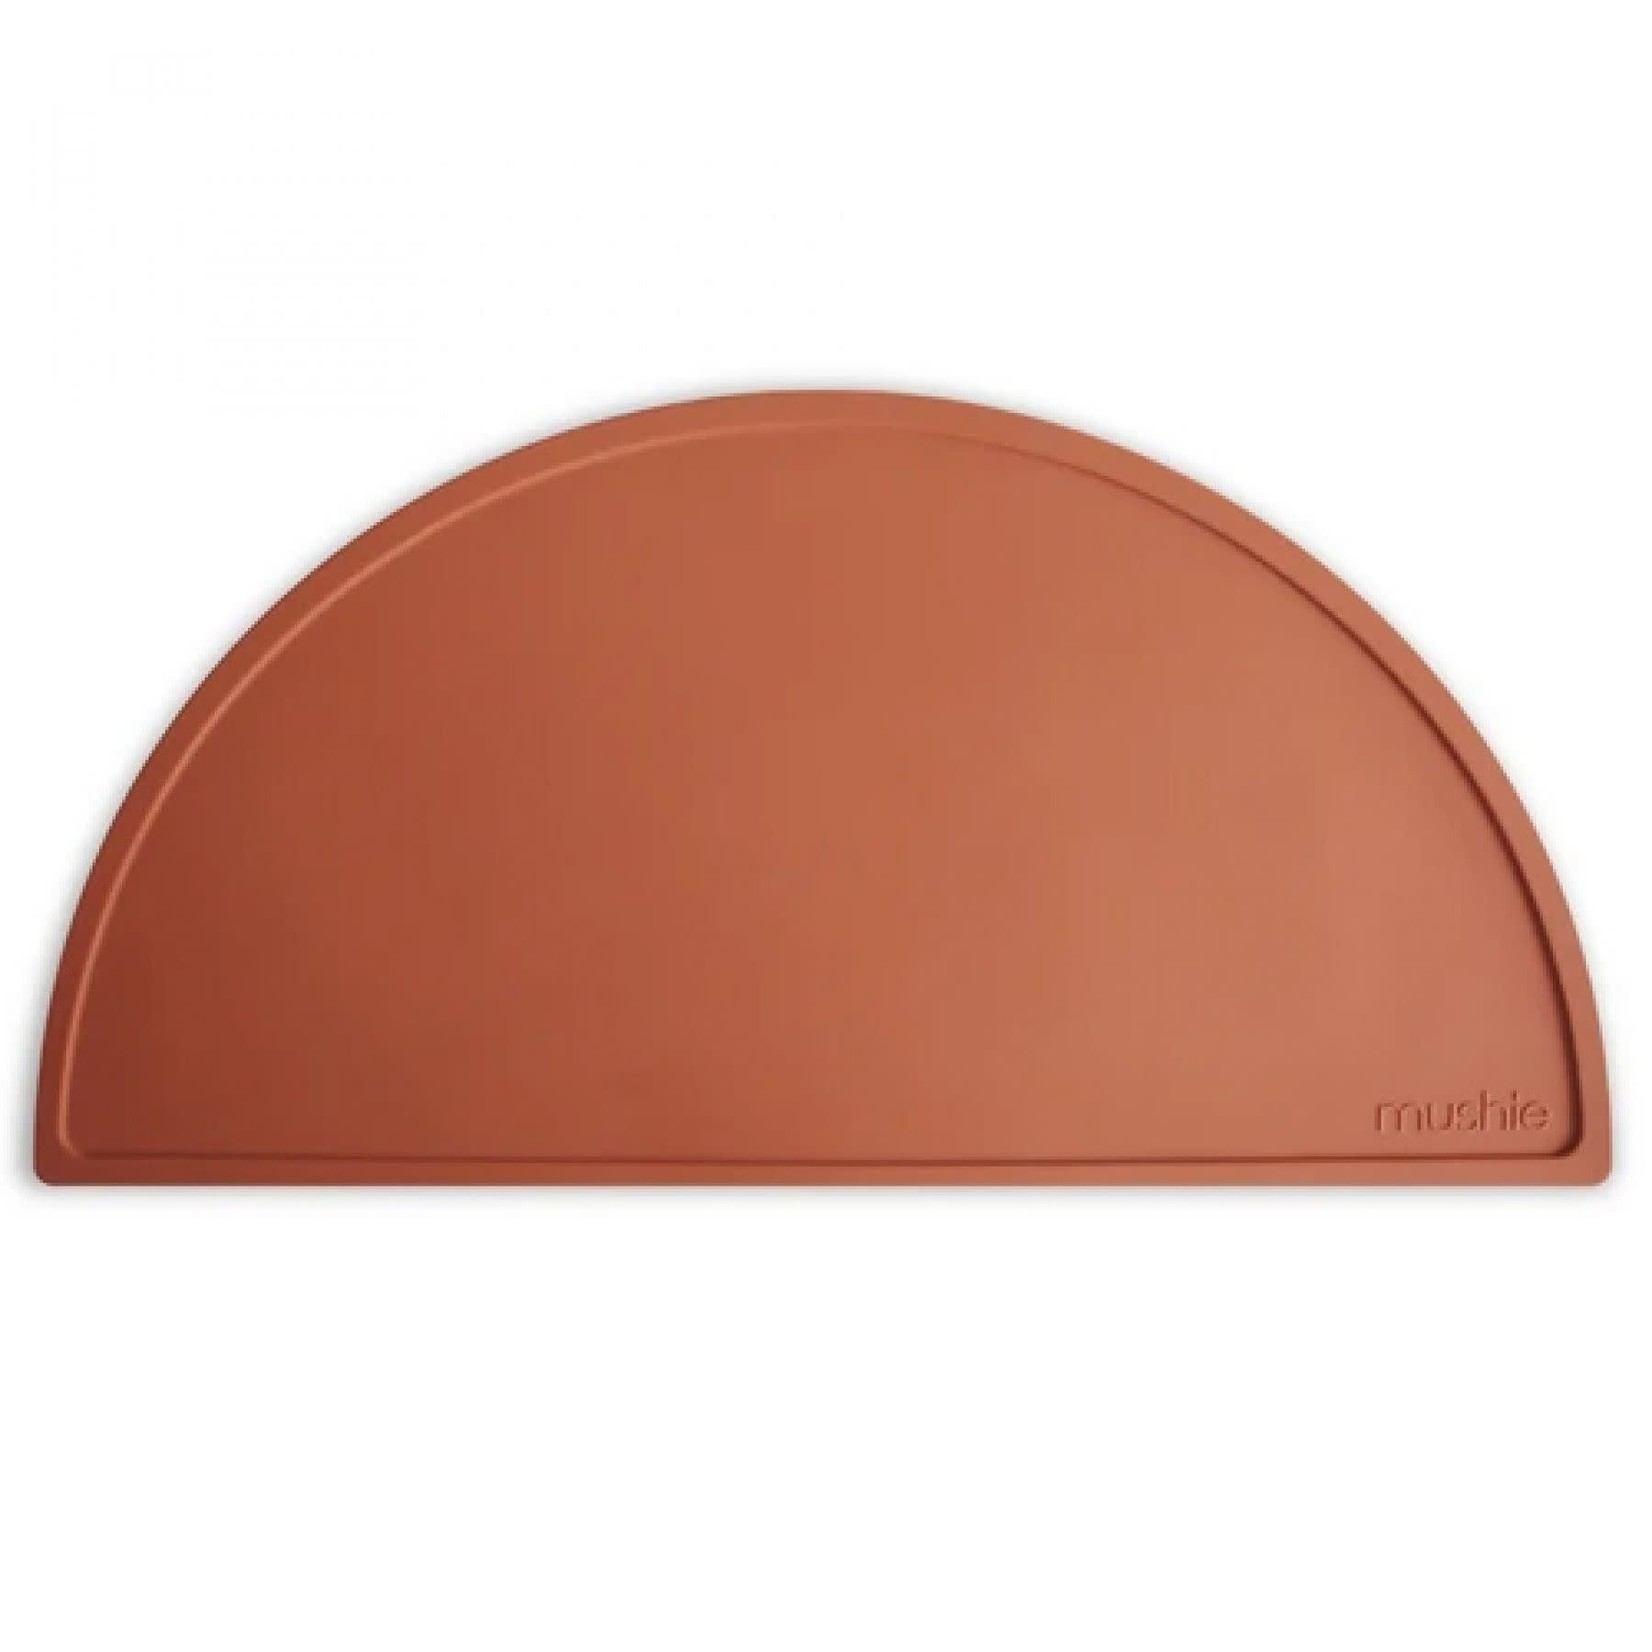 mushie Silicone Placemat Clay